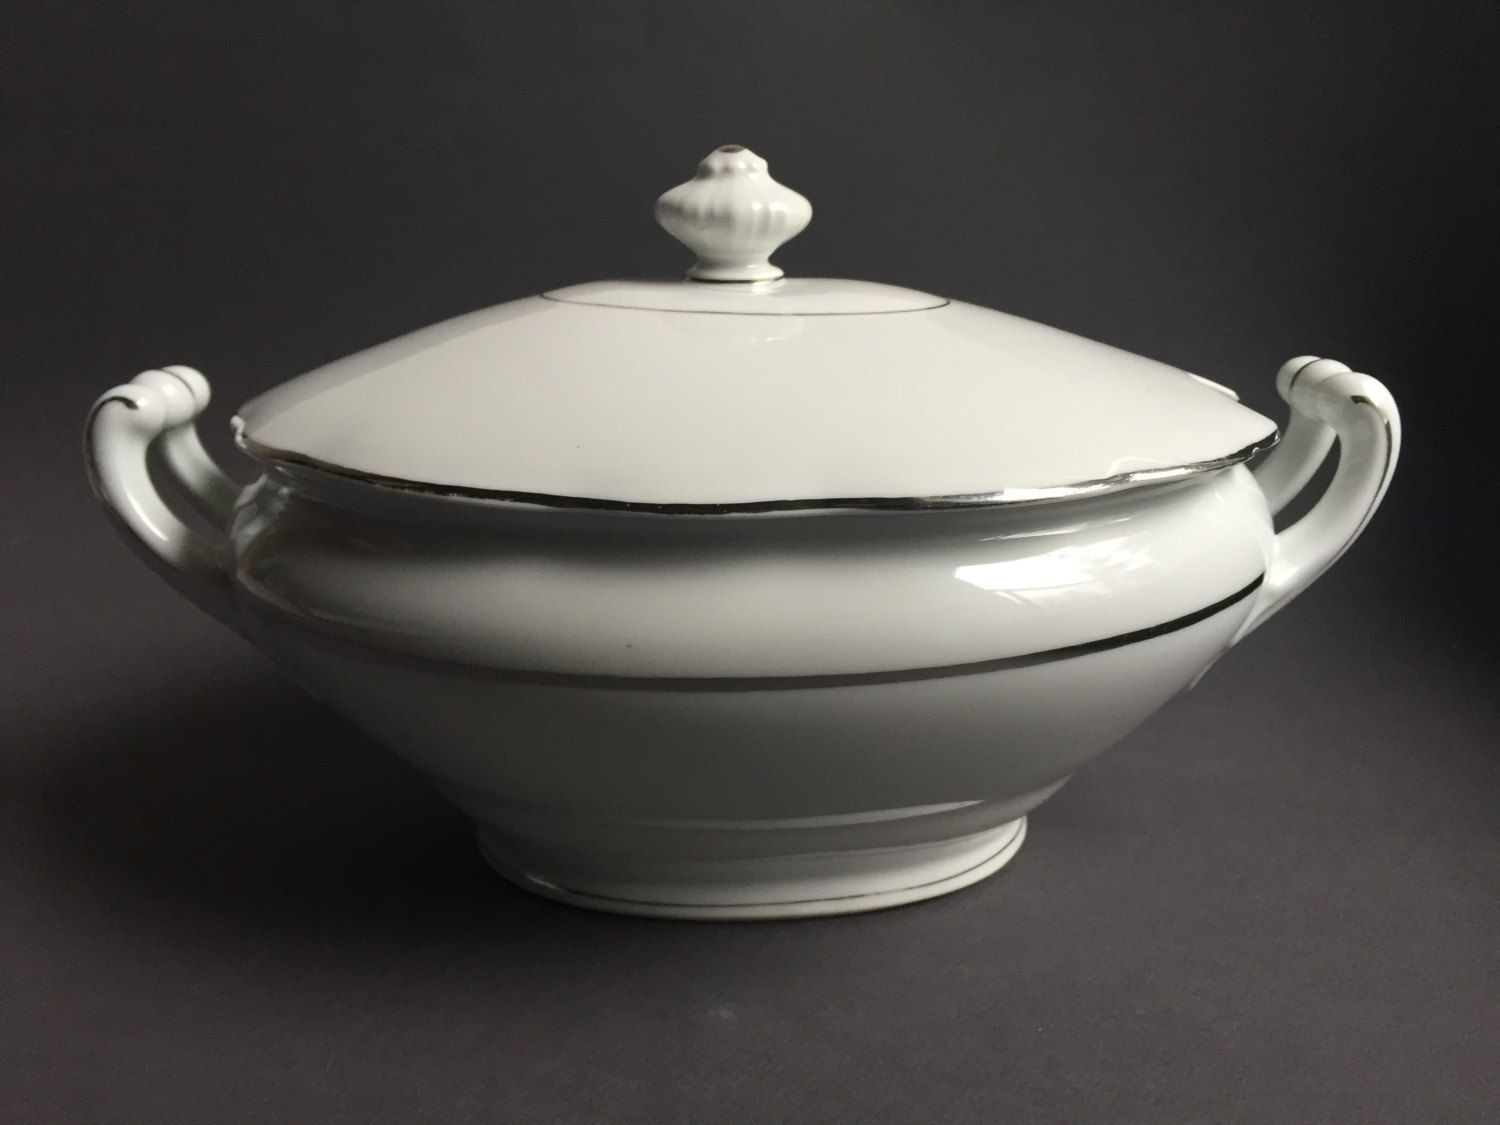 50's White Porcelain with Silver lines Soup Bowl, Vintage ...